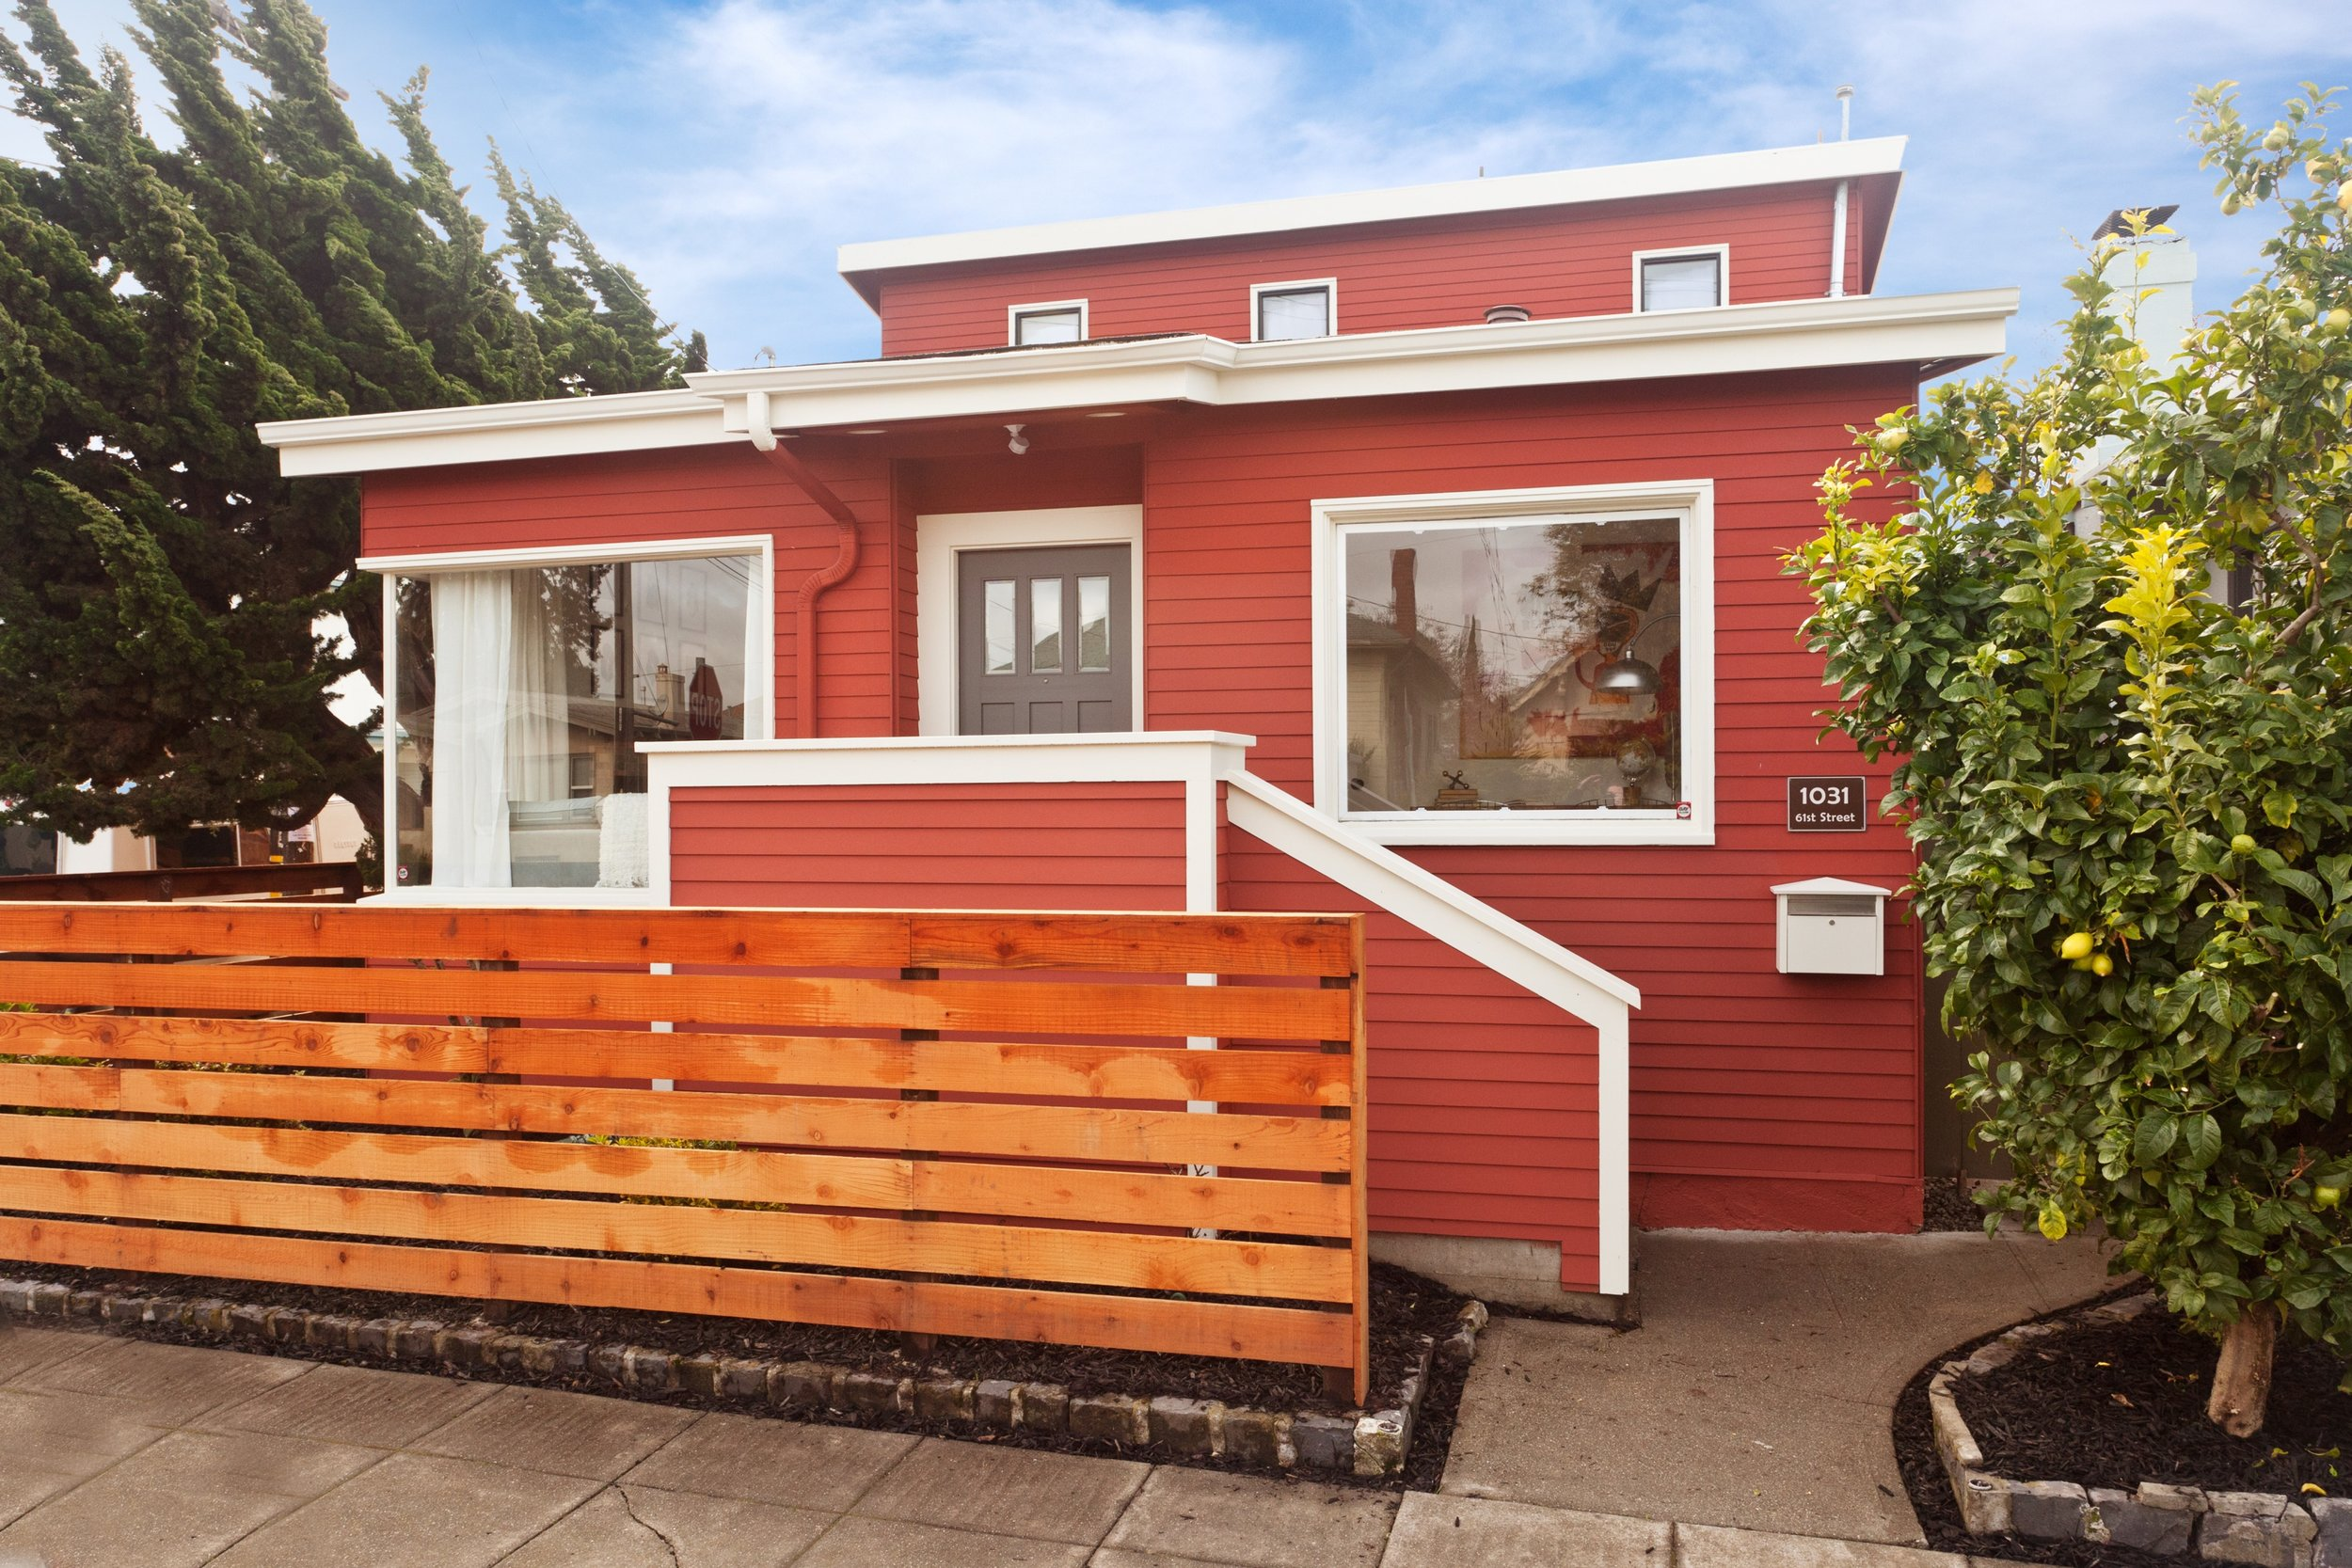 SOLD | 1031 61st Street, Oakland $857,000